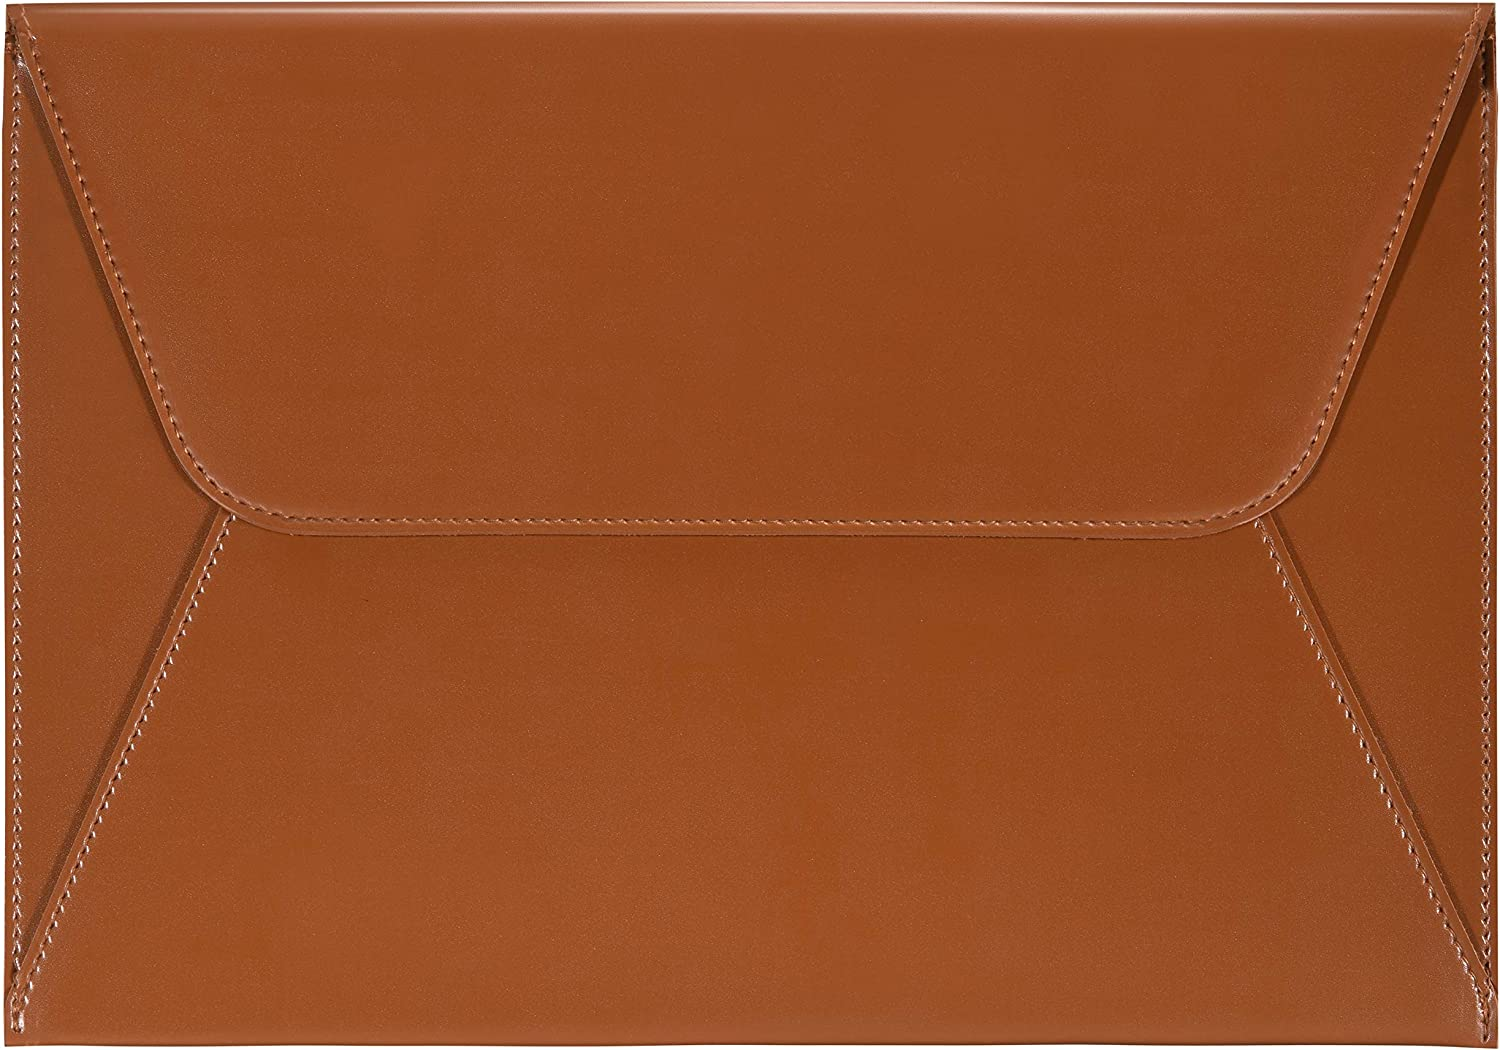 Comfyable Laptop Sleeve Compatible with 16 Inch MacBook Pro 2020 & 15-15.6 Inch Dell HP Notebook - PVC Leather Envelope Sleeve Computer Case for Mac, Brown